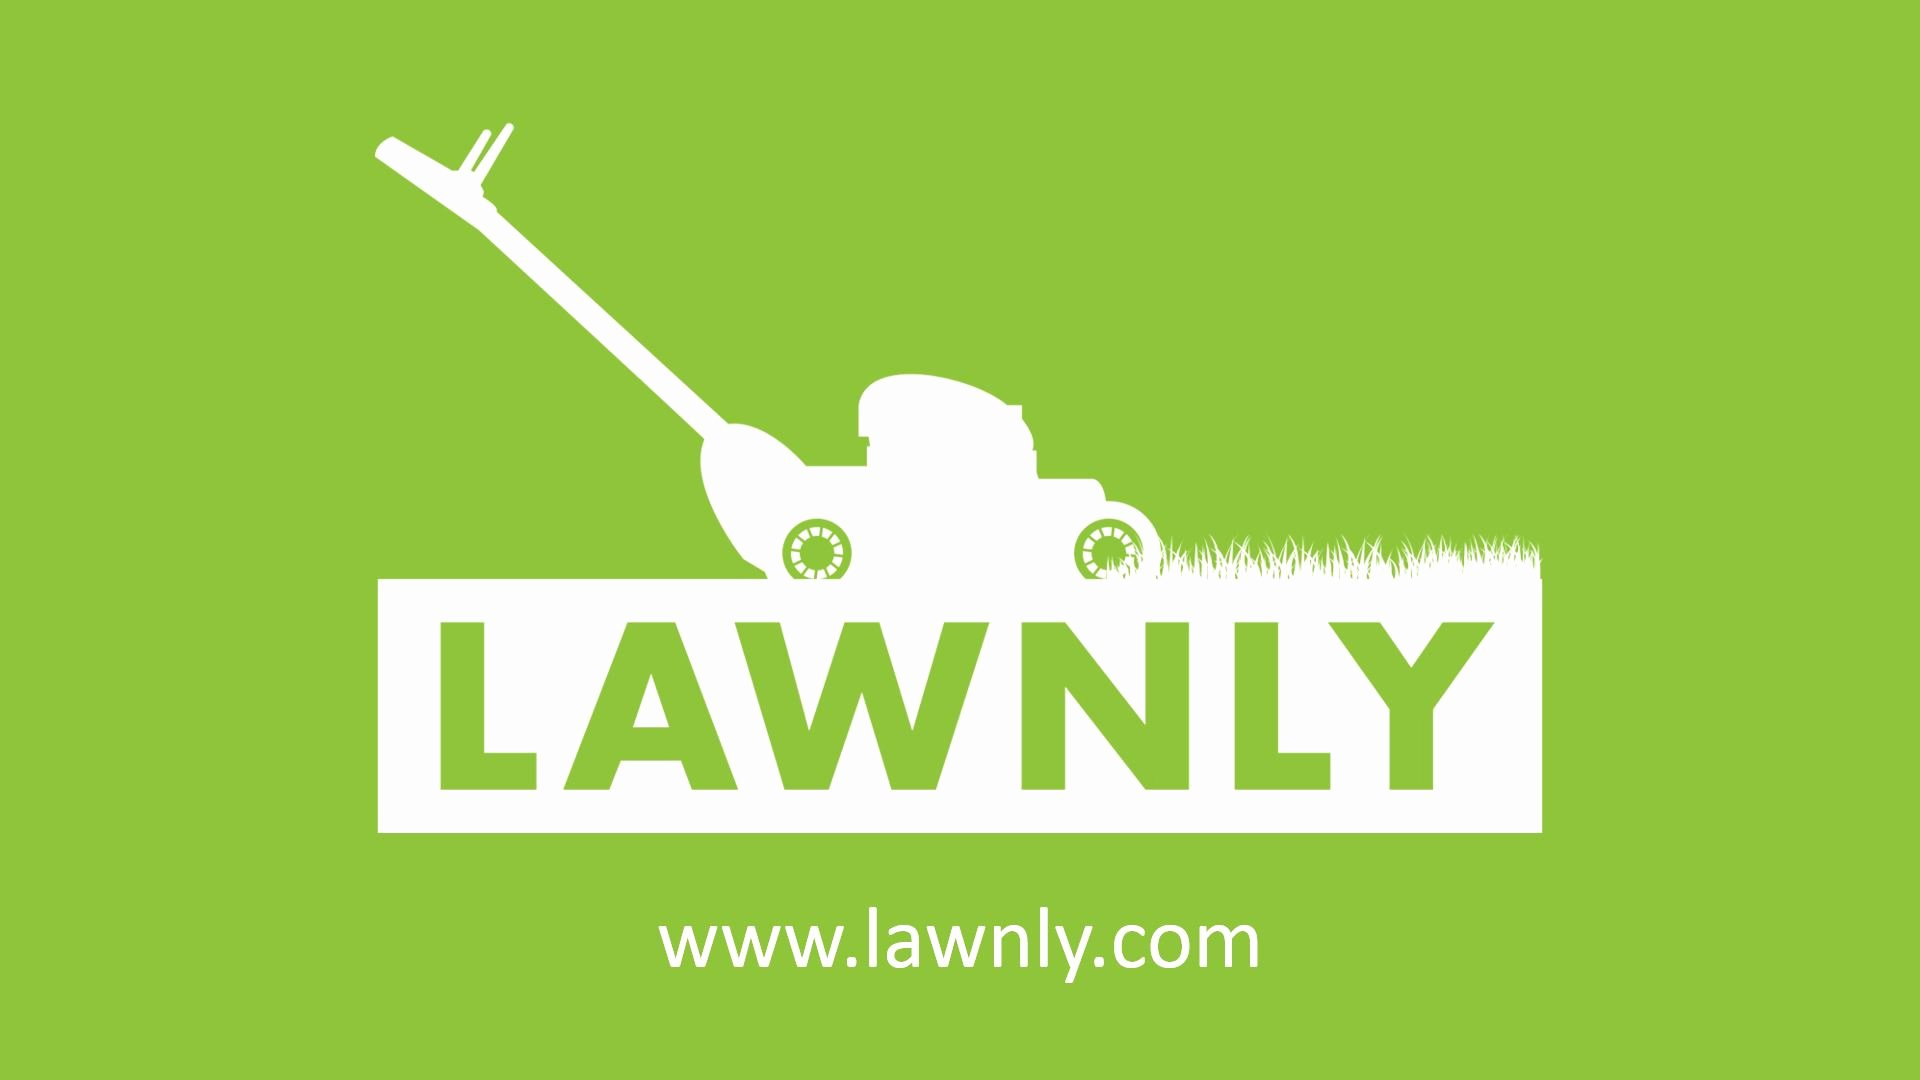 Lawn Care Business Logos Unique Lawnly the 'uber for Lawn Care' Launches In northwest Arkansas